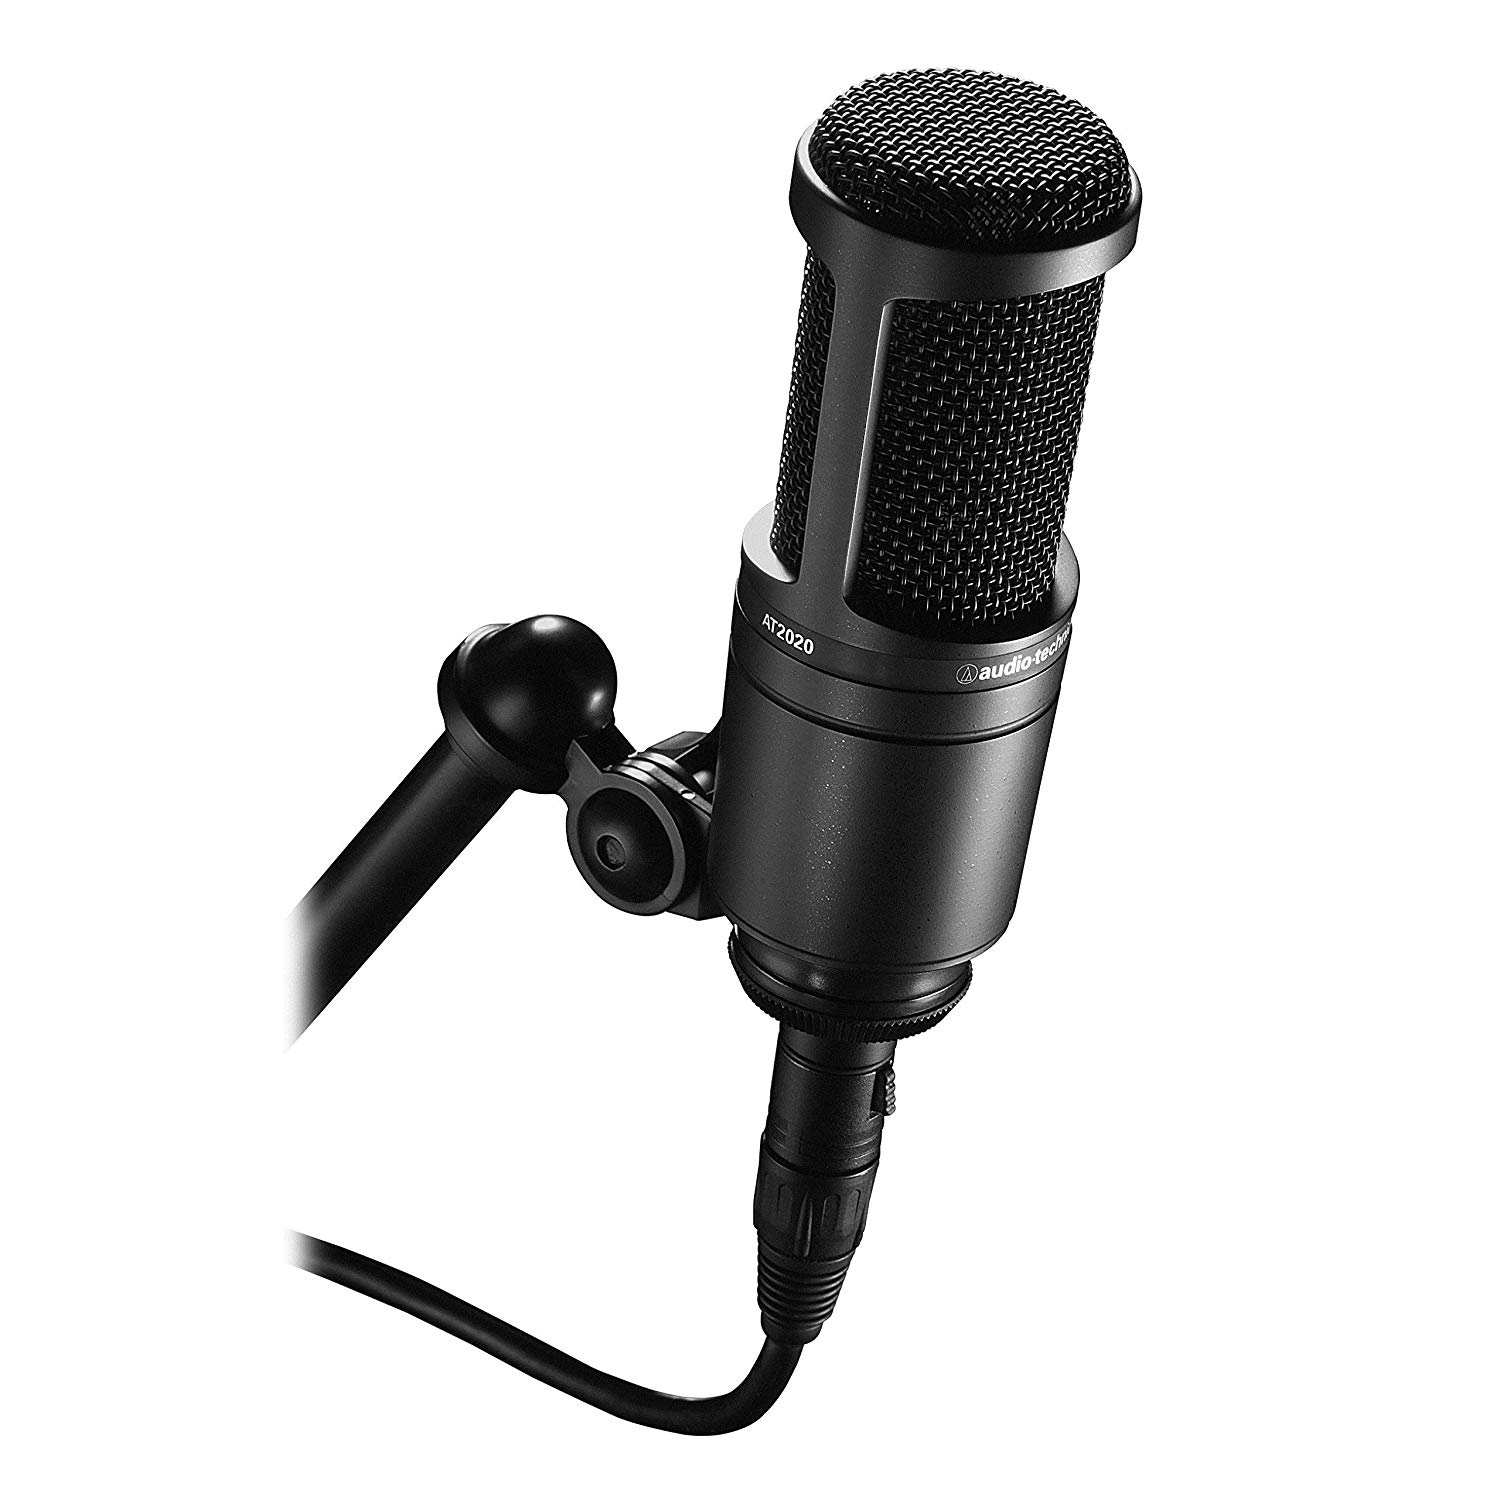 30 All New Audio Technica At2020 Price And Release Date